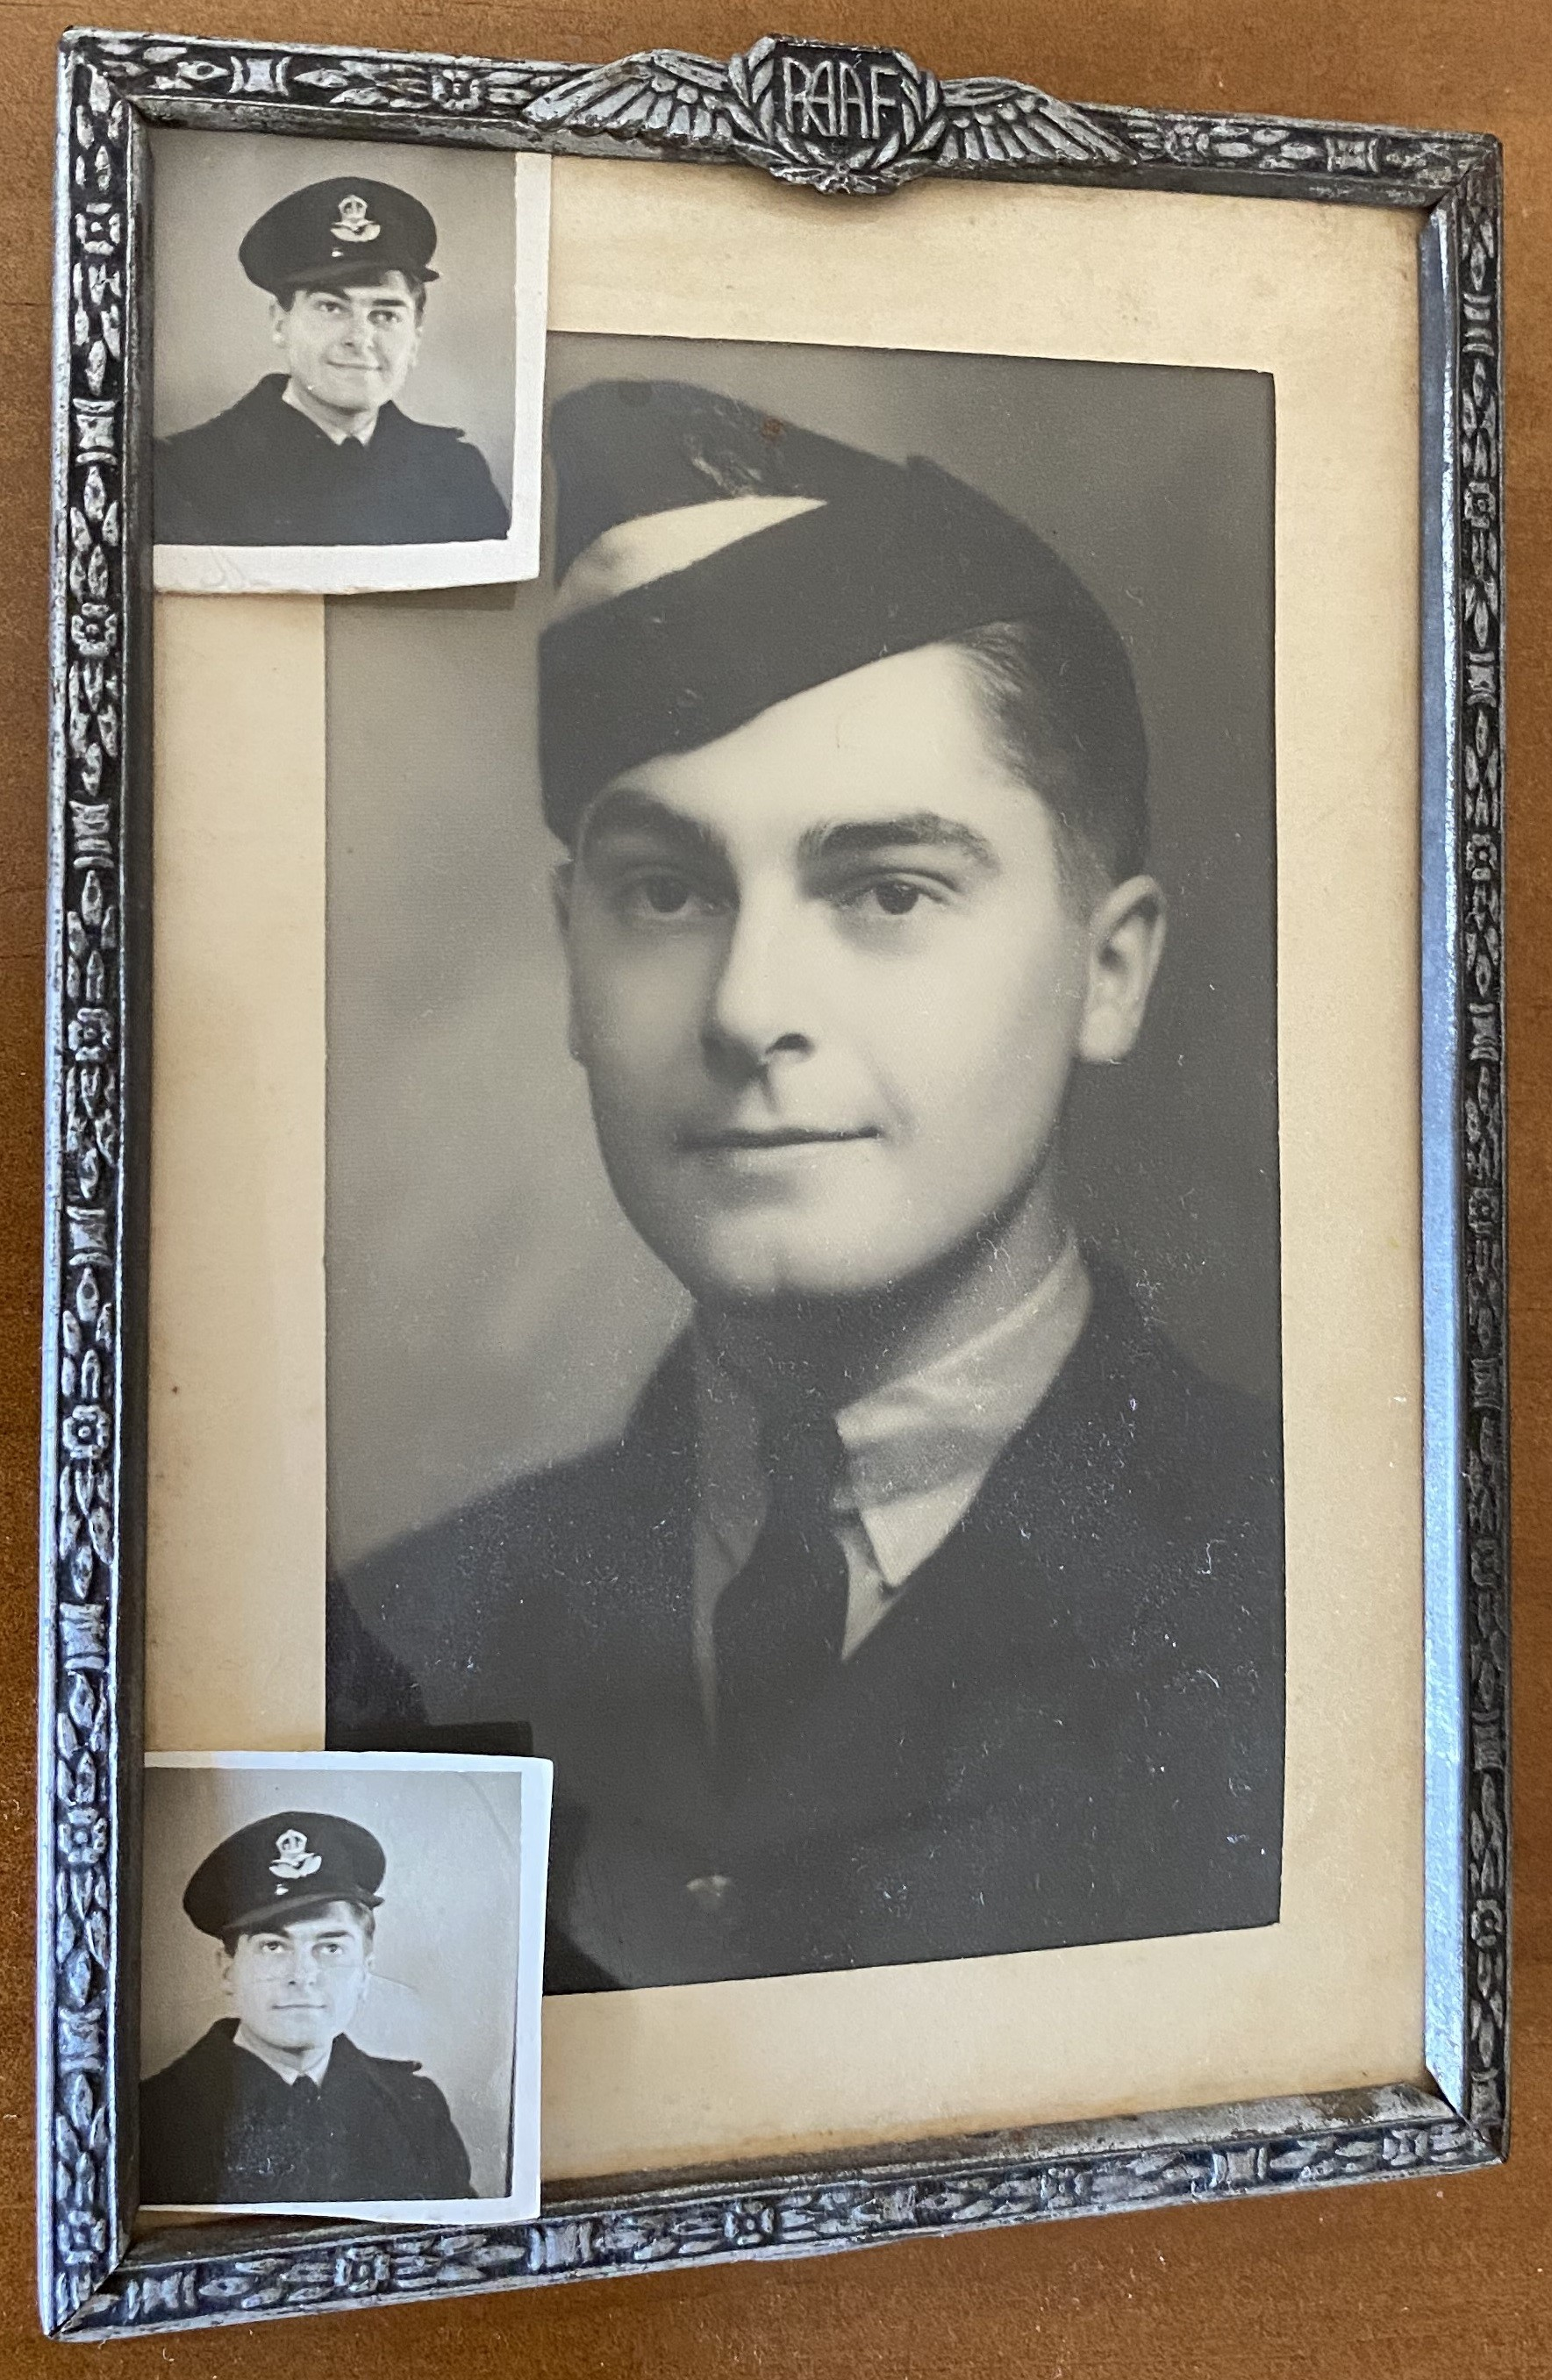 Three black and white photo portraits of Robert Marshall during his service